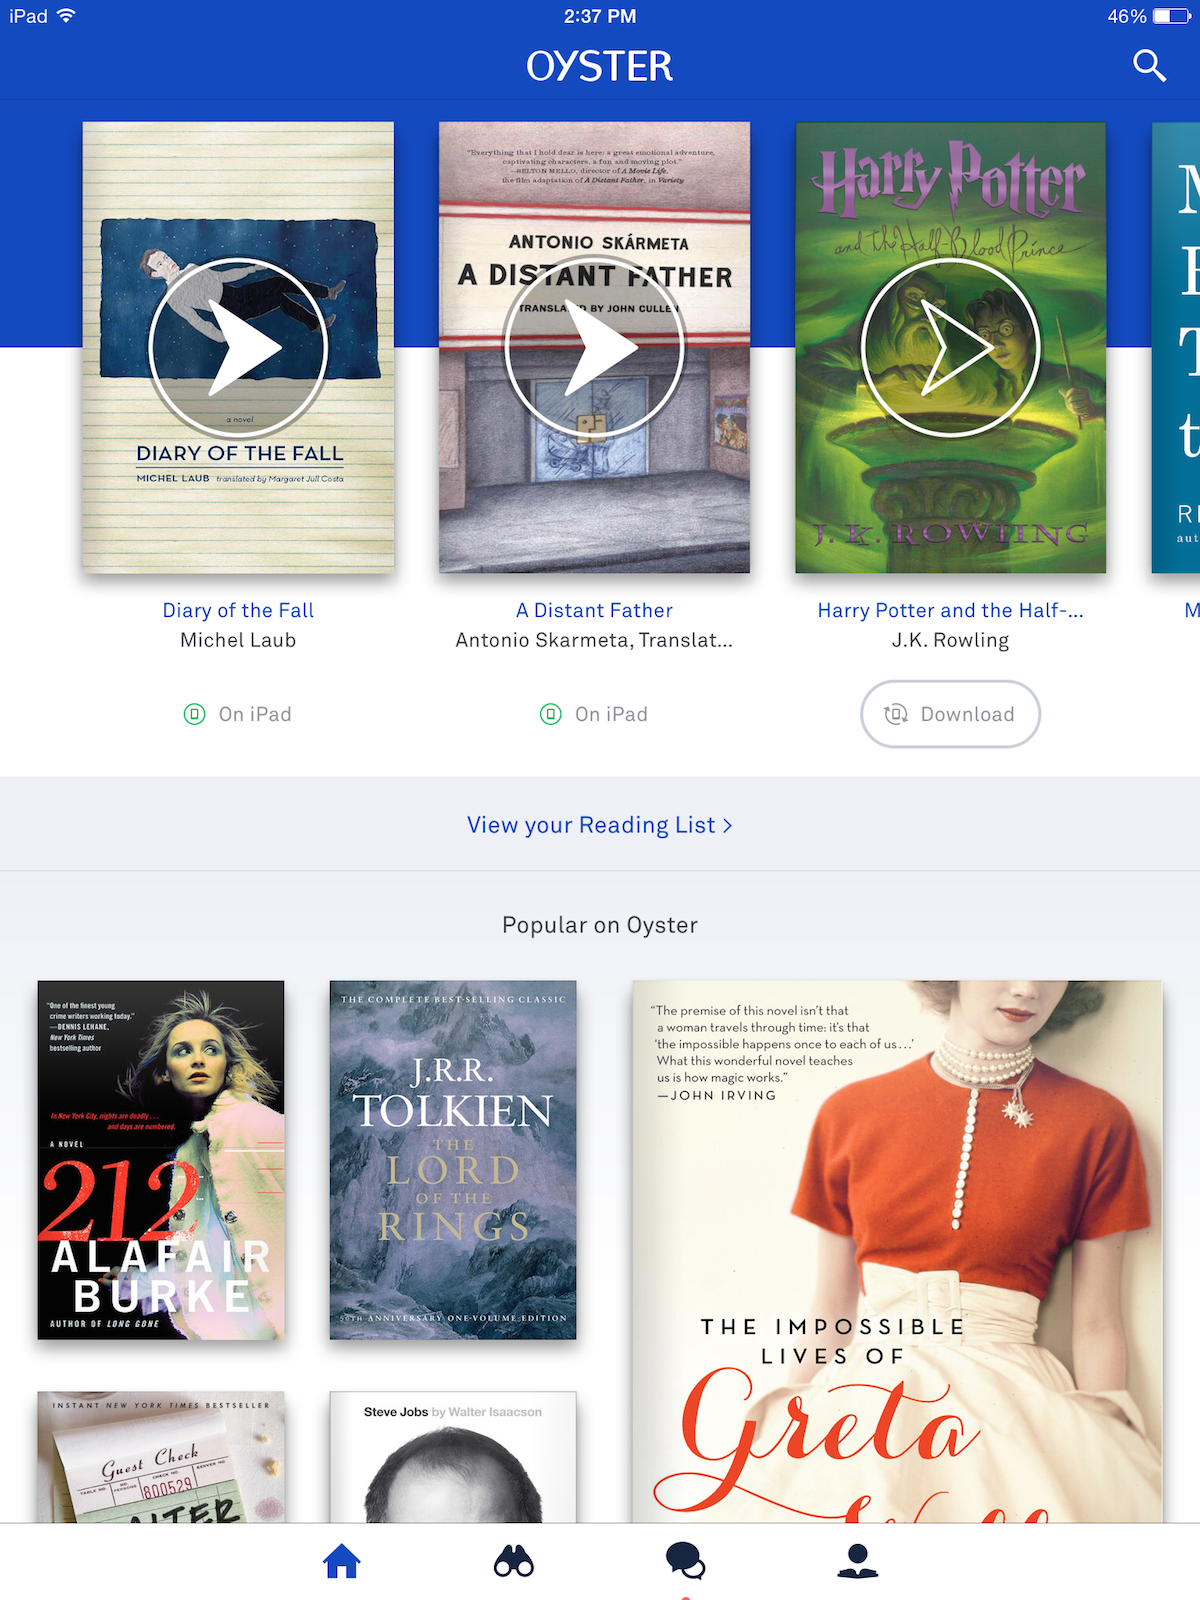 Oyster\'s App Update Focuses on Better Recommendation